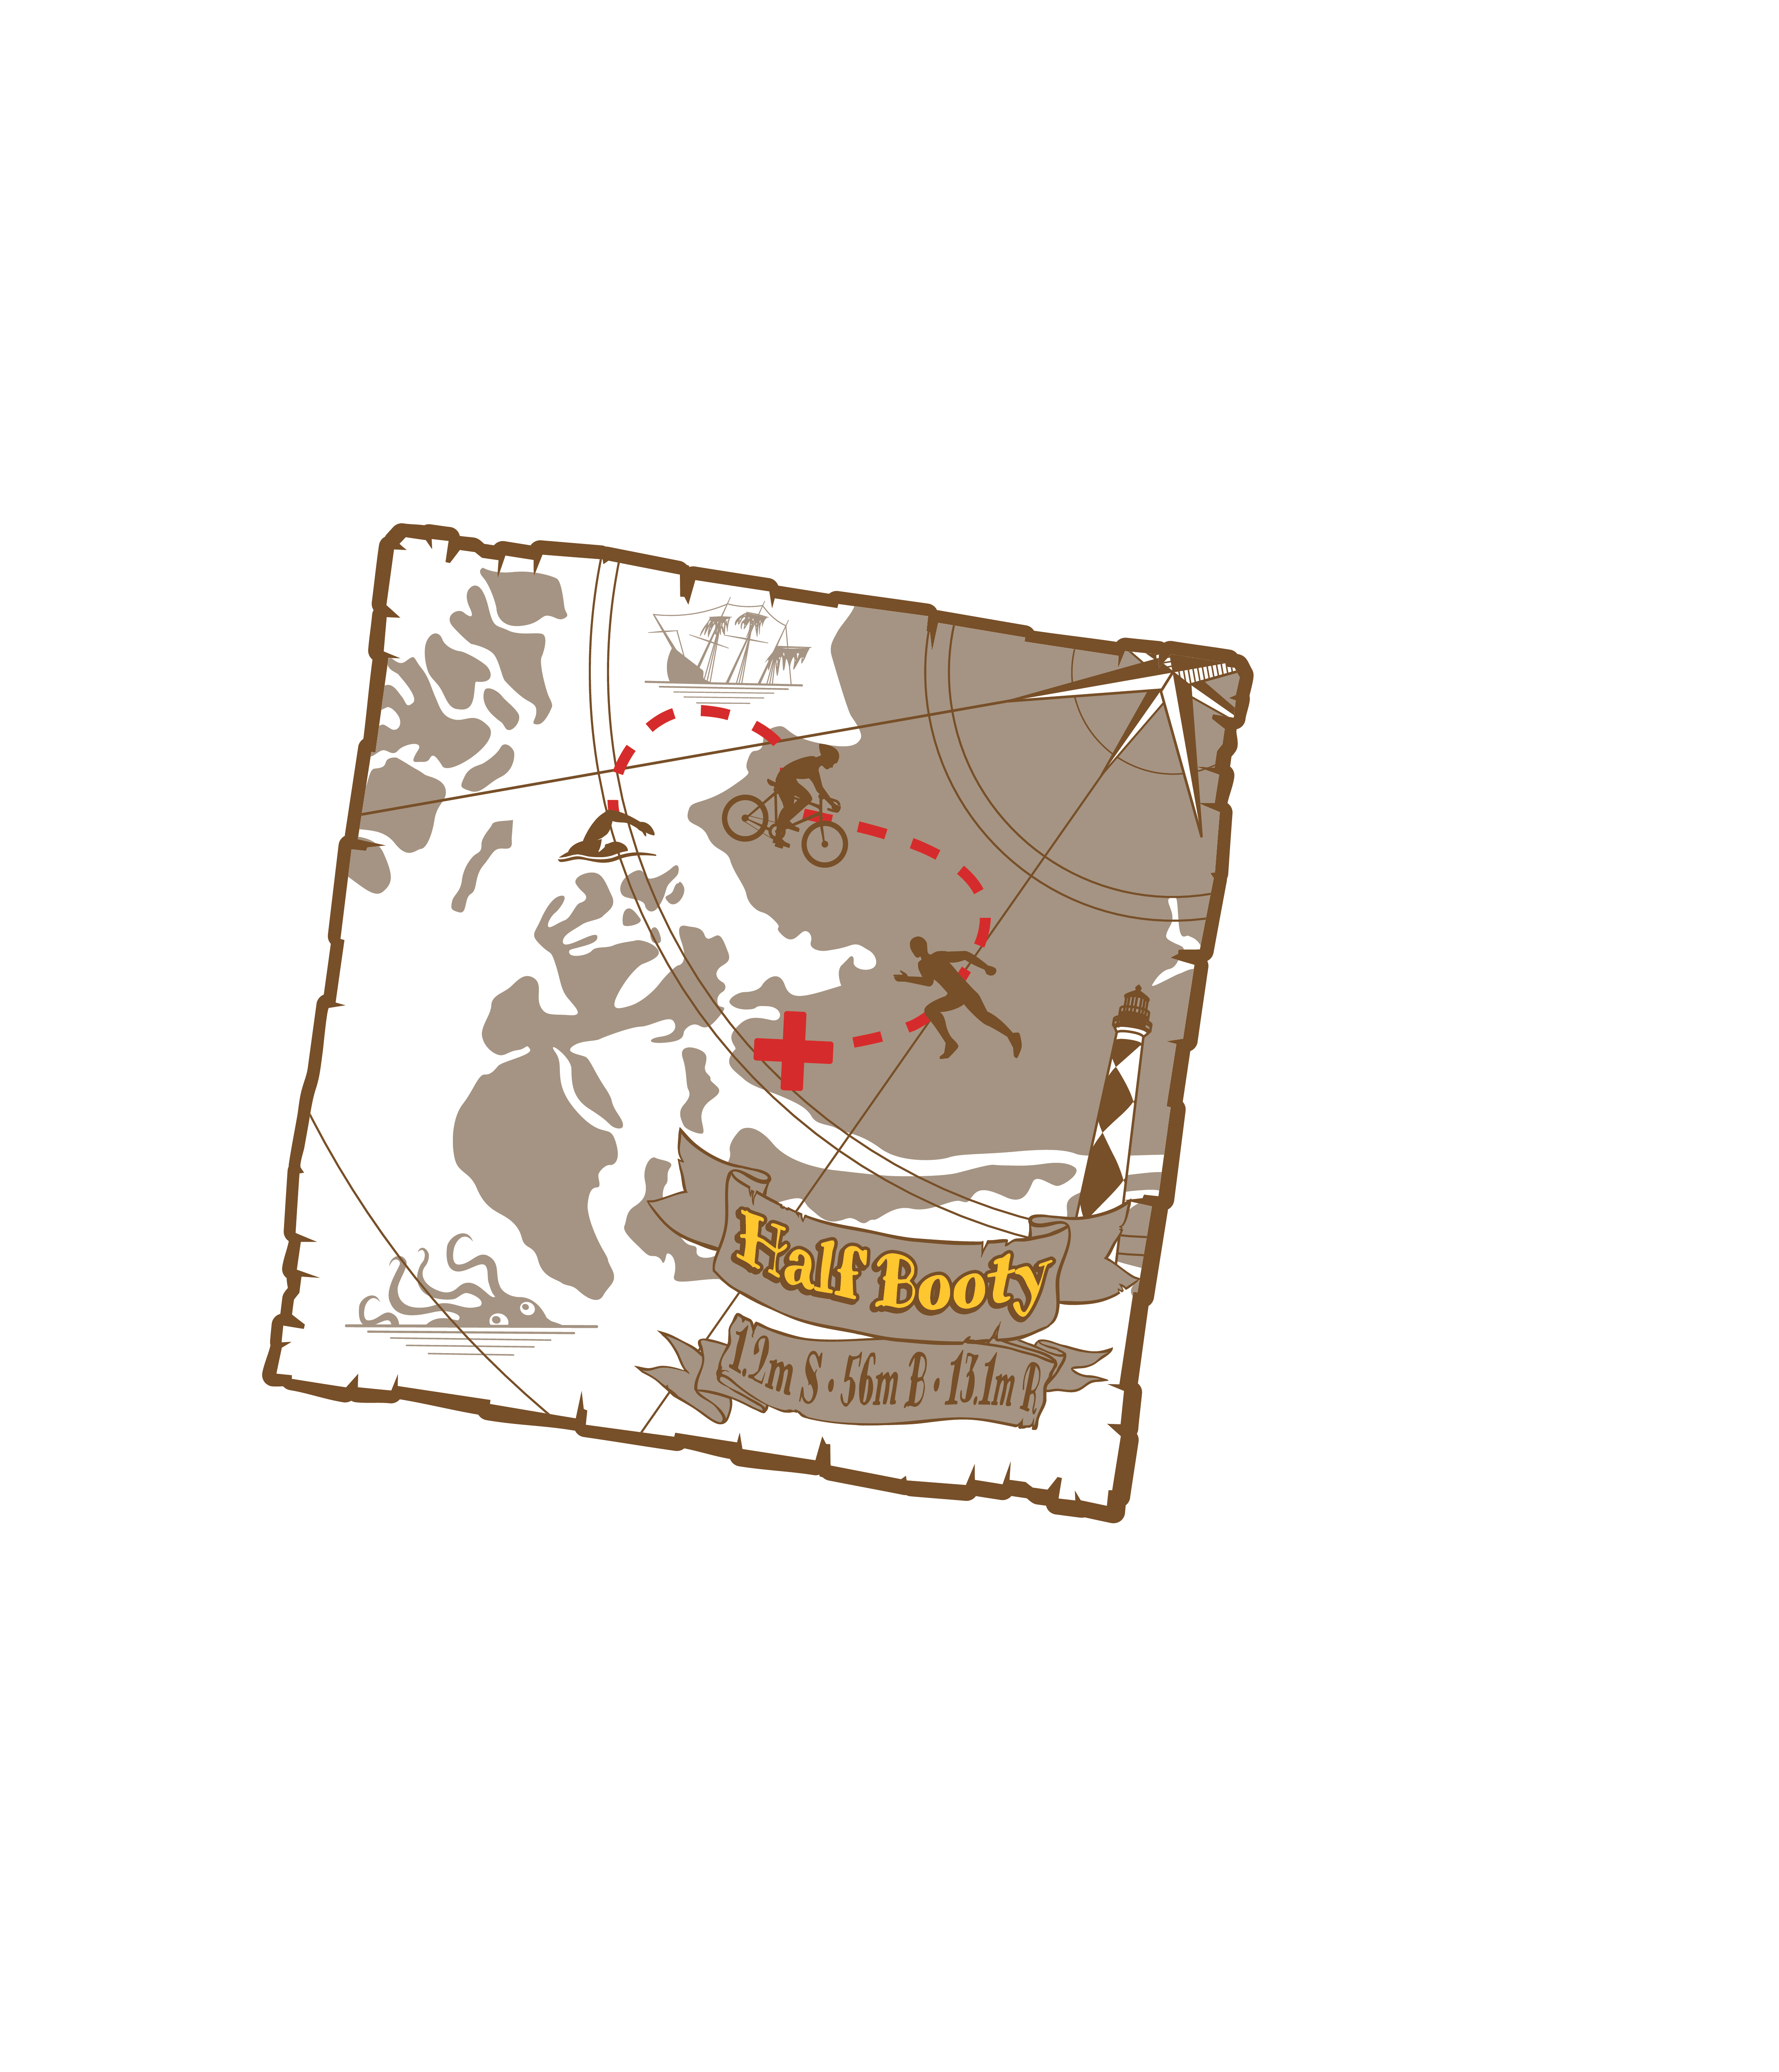 Crystal Coast Half Booty Triathlon